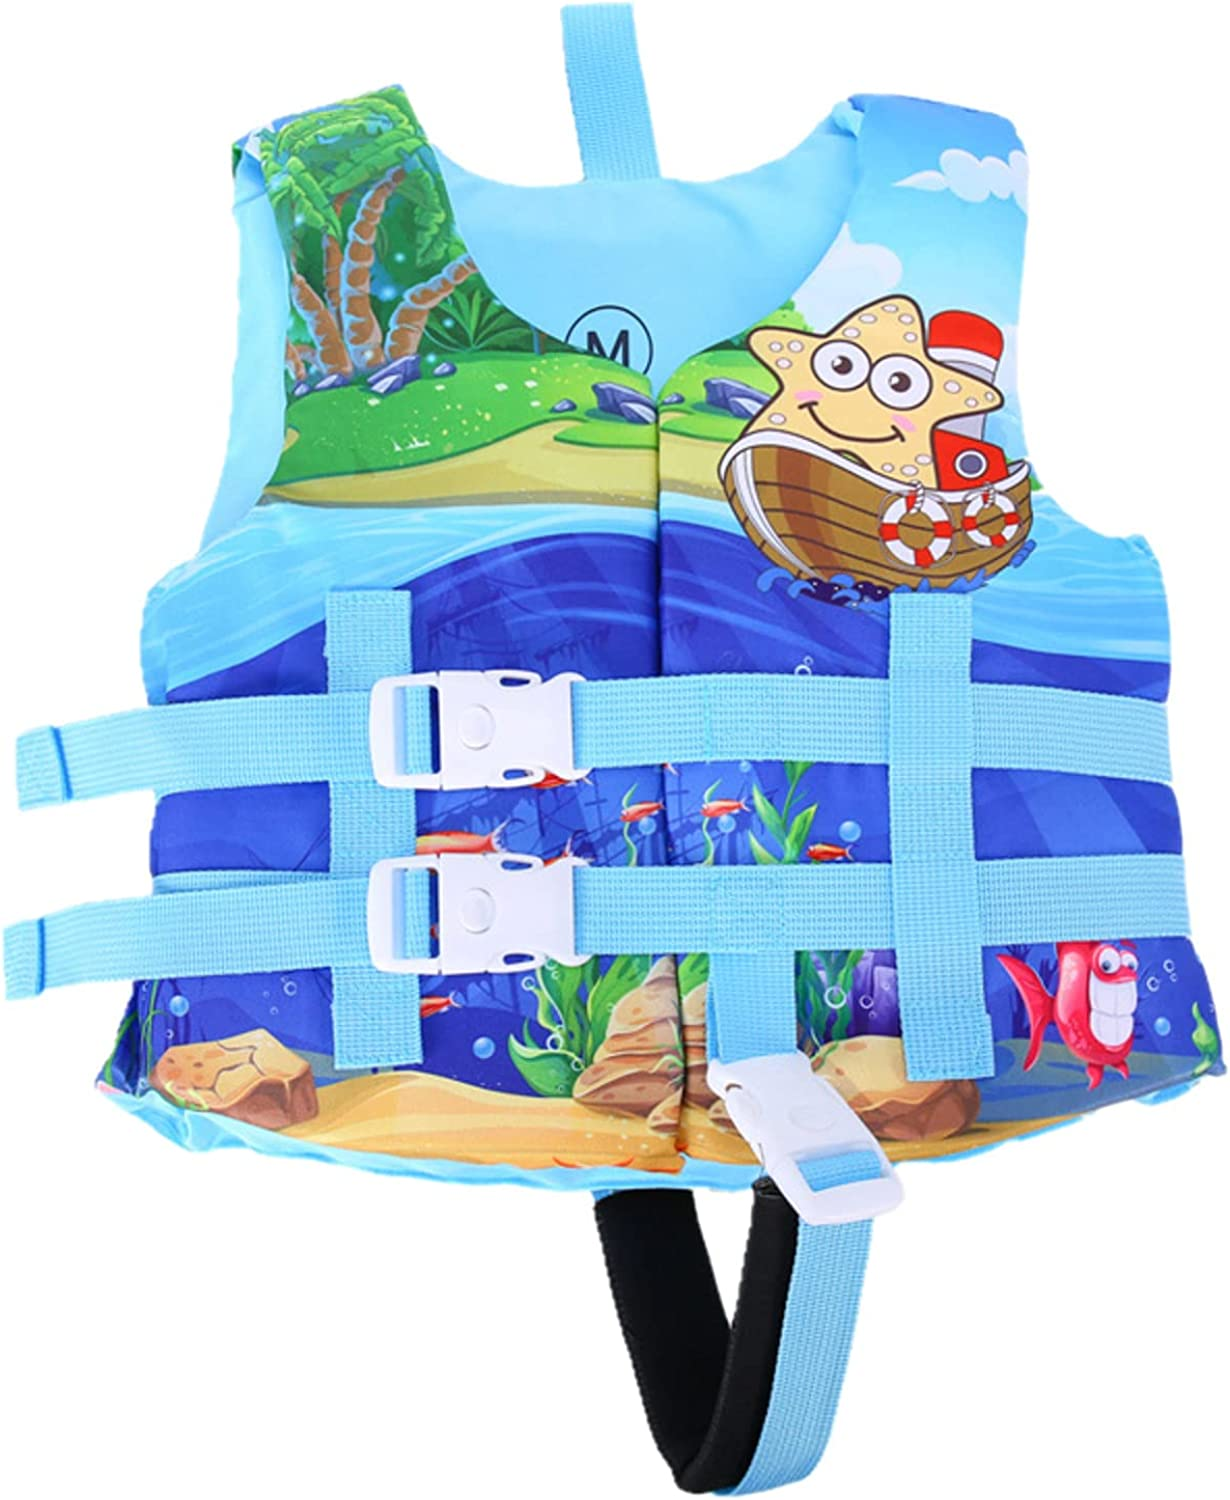 2021 Kids online shopping Swim Vest Jackets Cartoon Baby Pool Aid Printed 2021 autumn and winter new